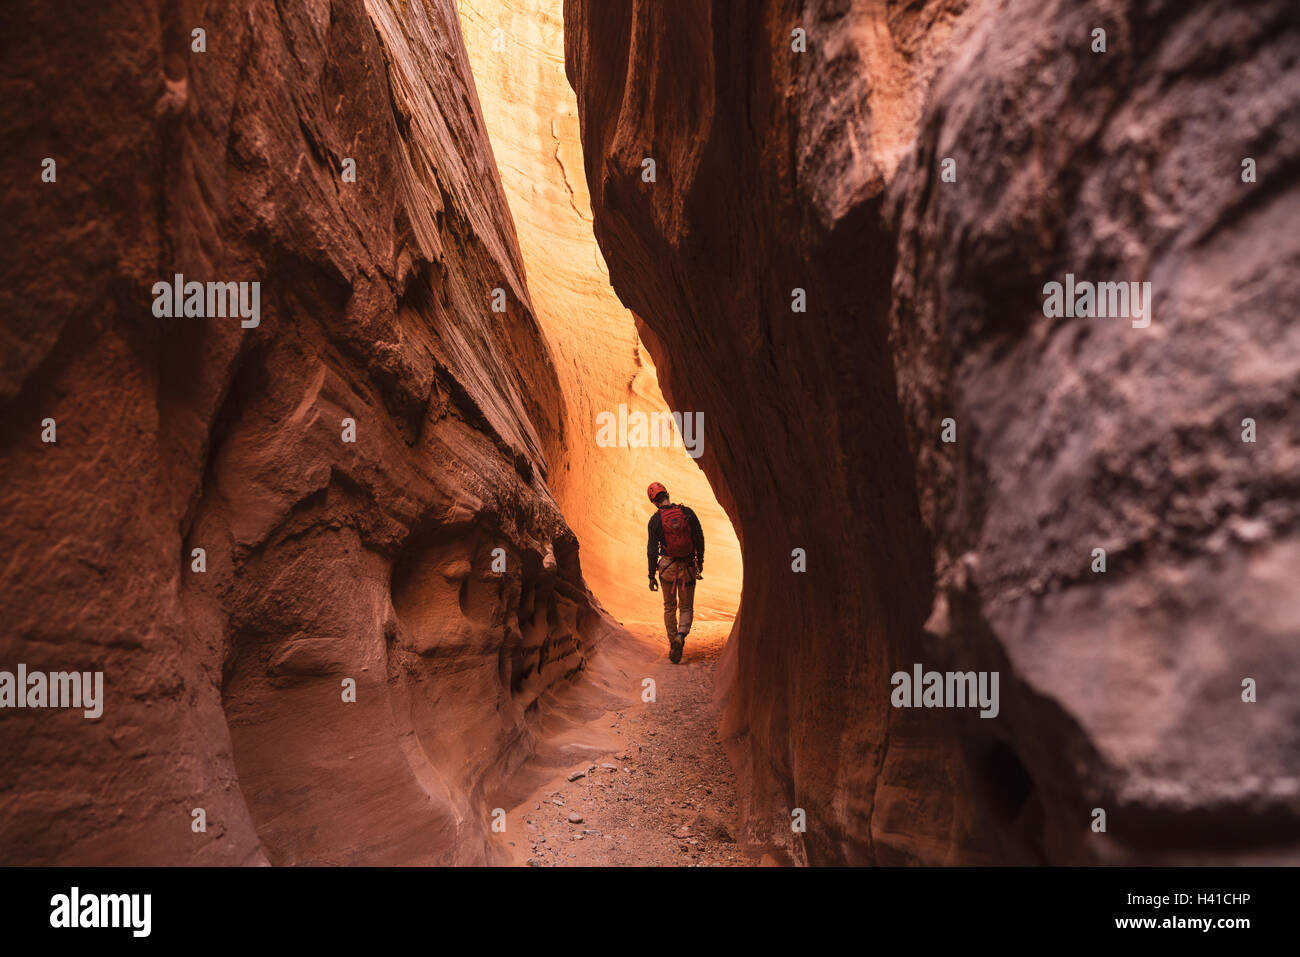 A man canyoneers through a red slot canyon in southern Utah - Stock Image